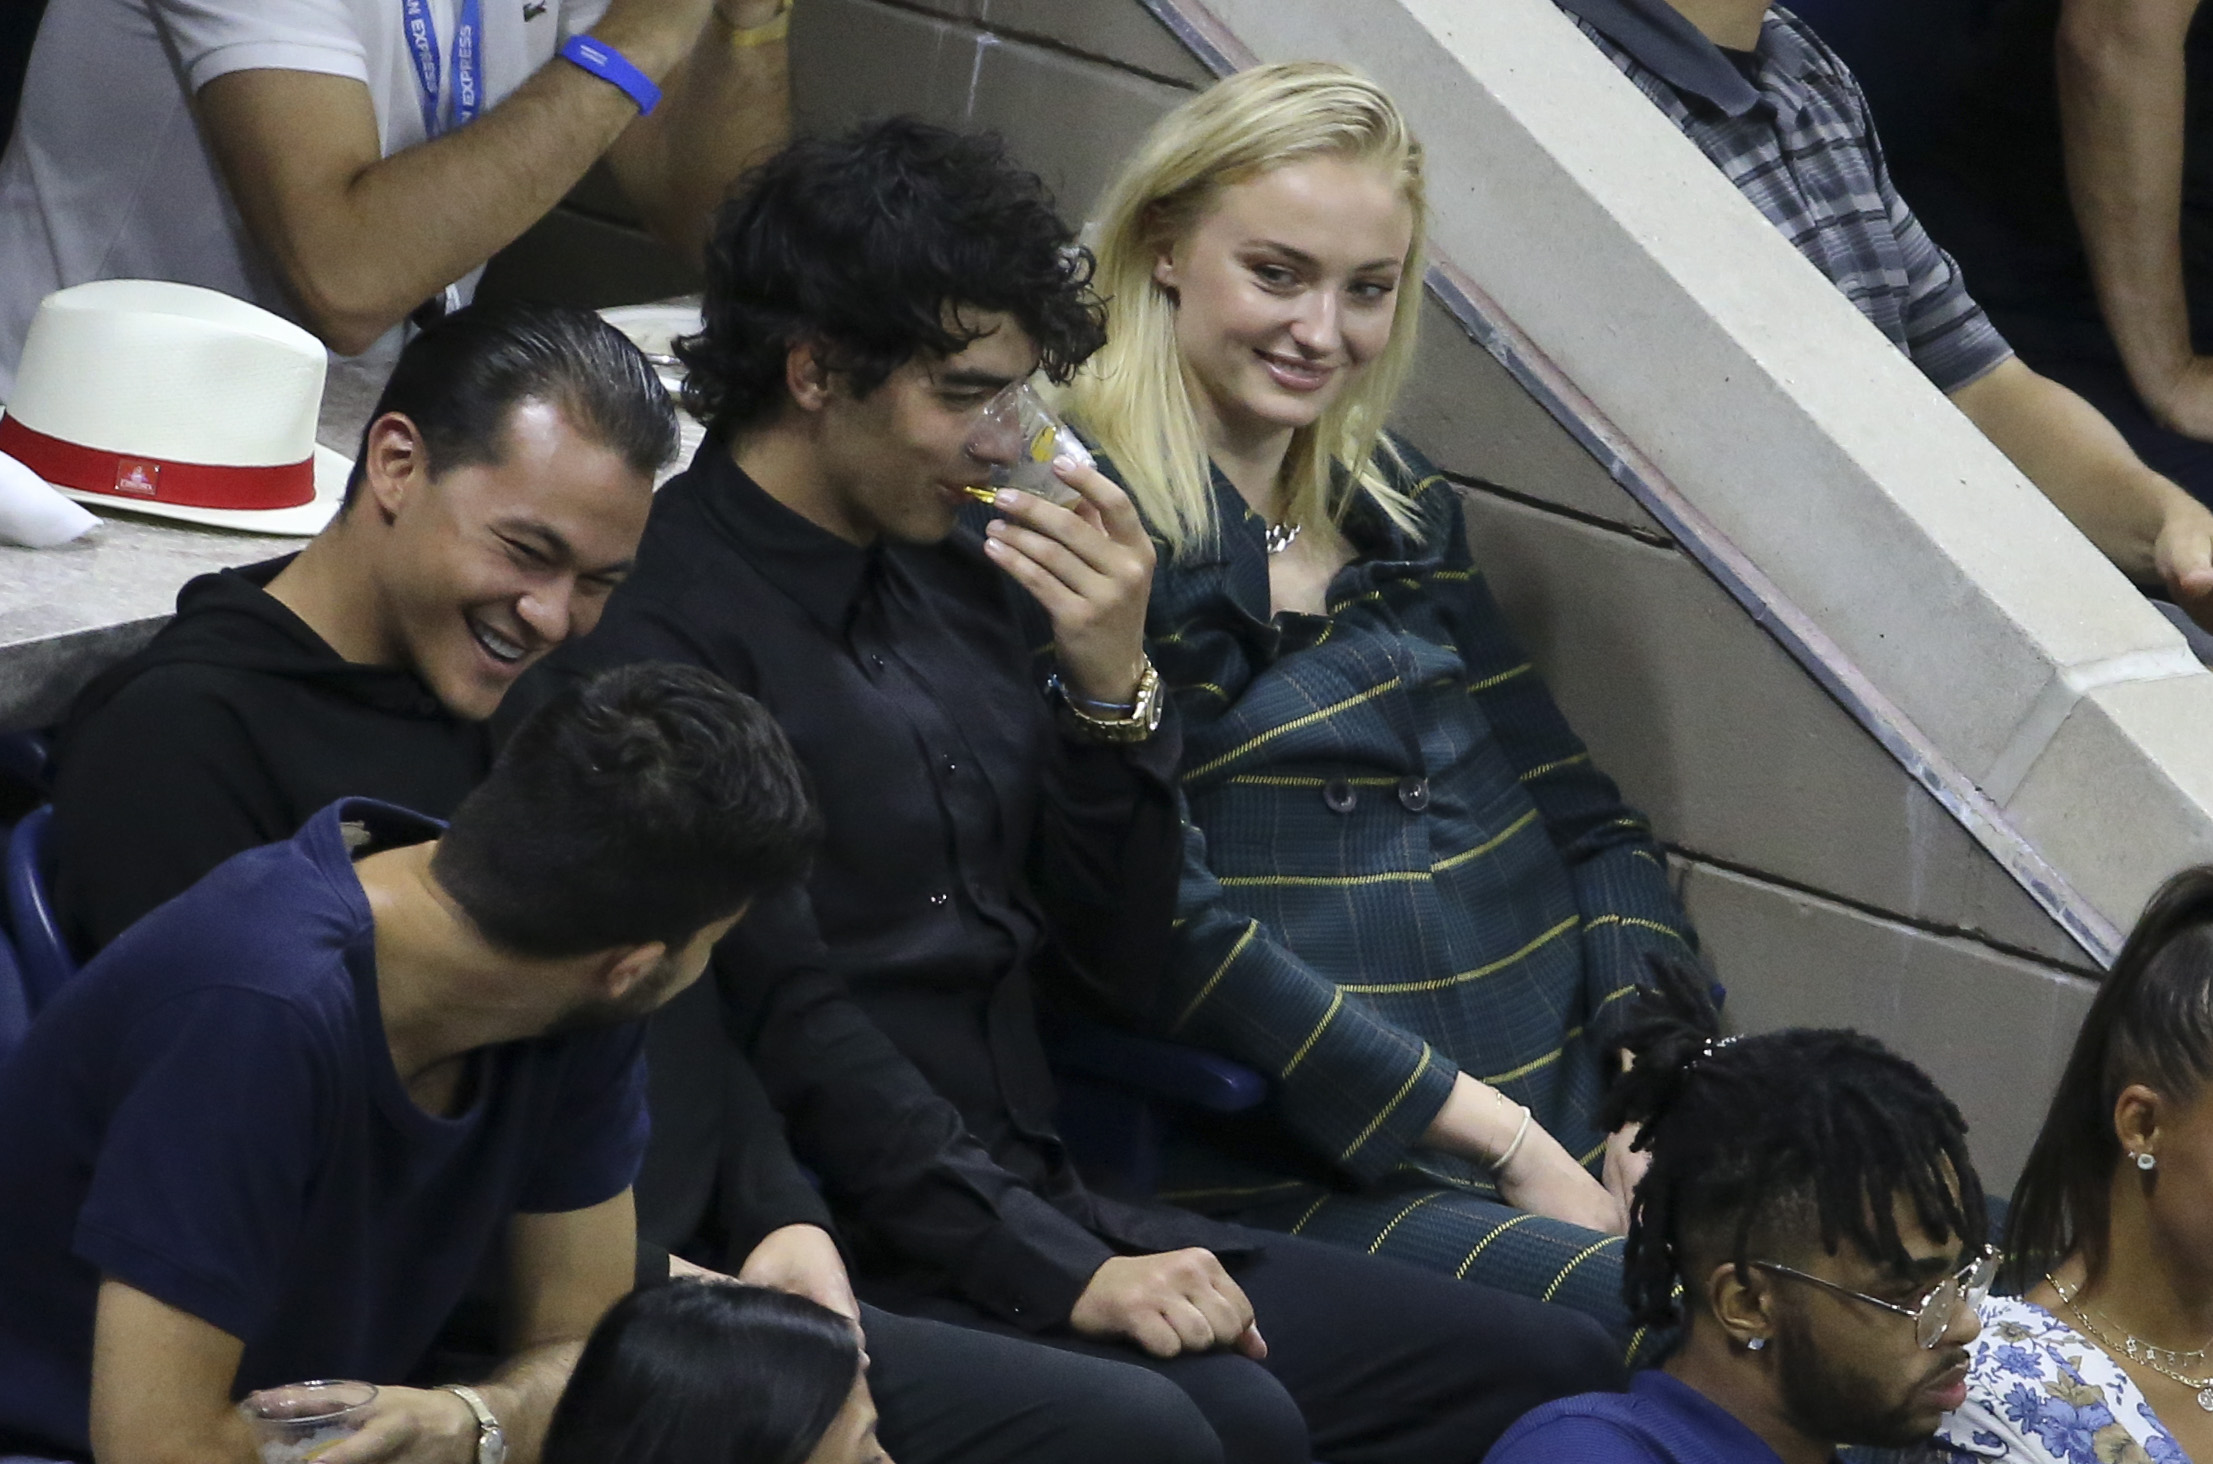 Joe Jonas and girlfriend Sophie Turner have a laugh at the US Open on Arthur Ashe stadium at the USTA Billie Jean King National Tennis Center on August 31, 2018 in Flushing Meadows, Queens, New York City. (Photo by Jean Catuffe/GC Images)